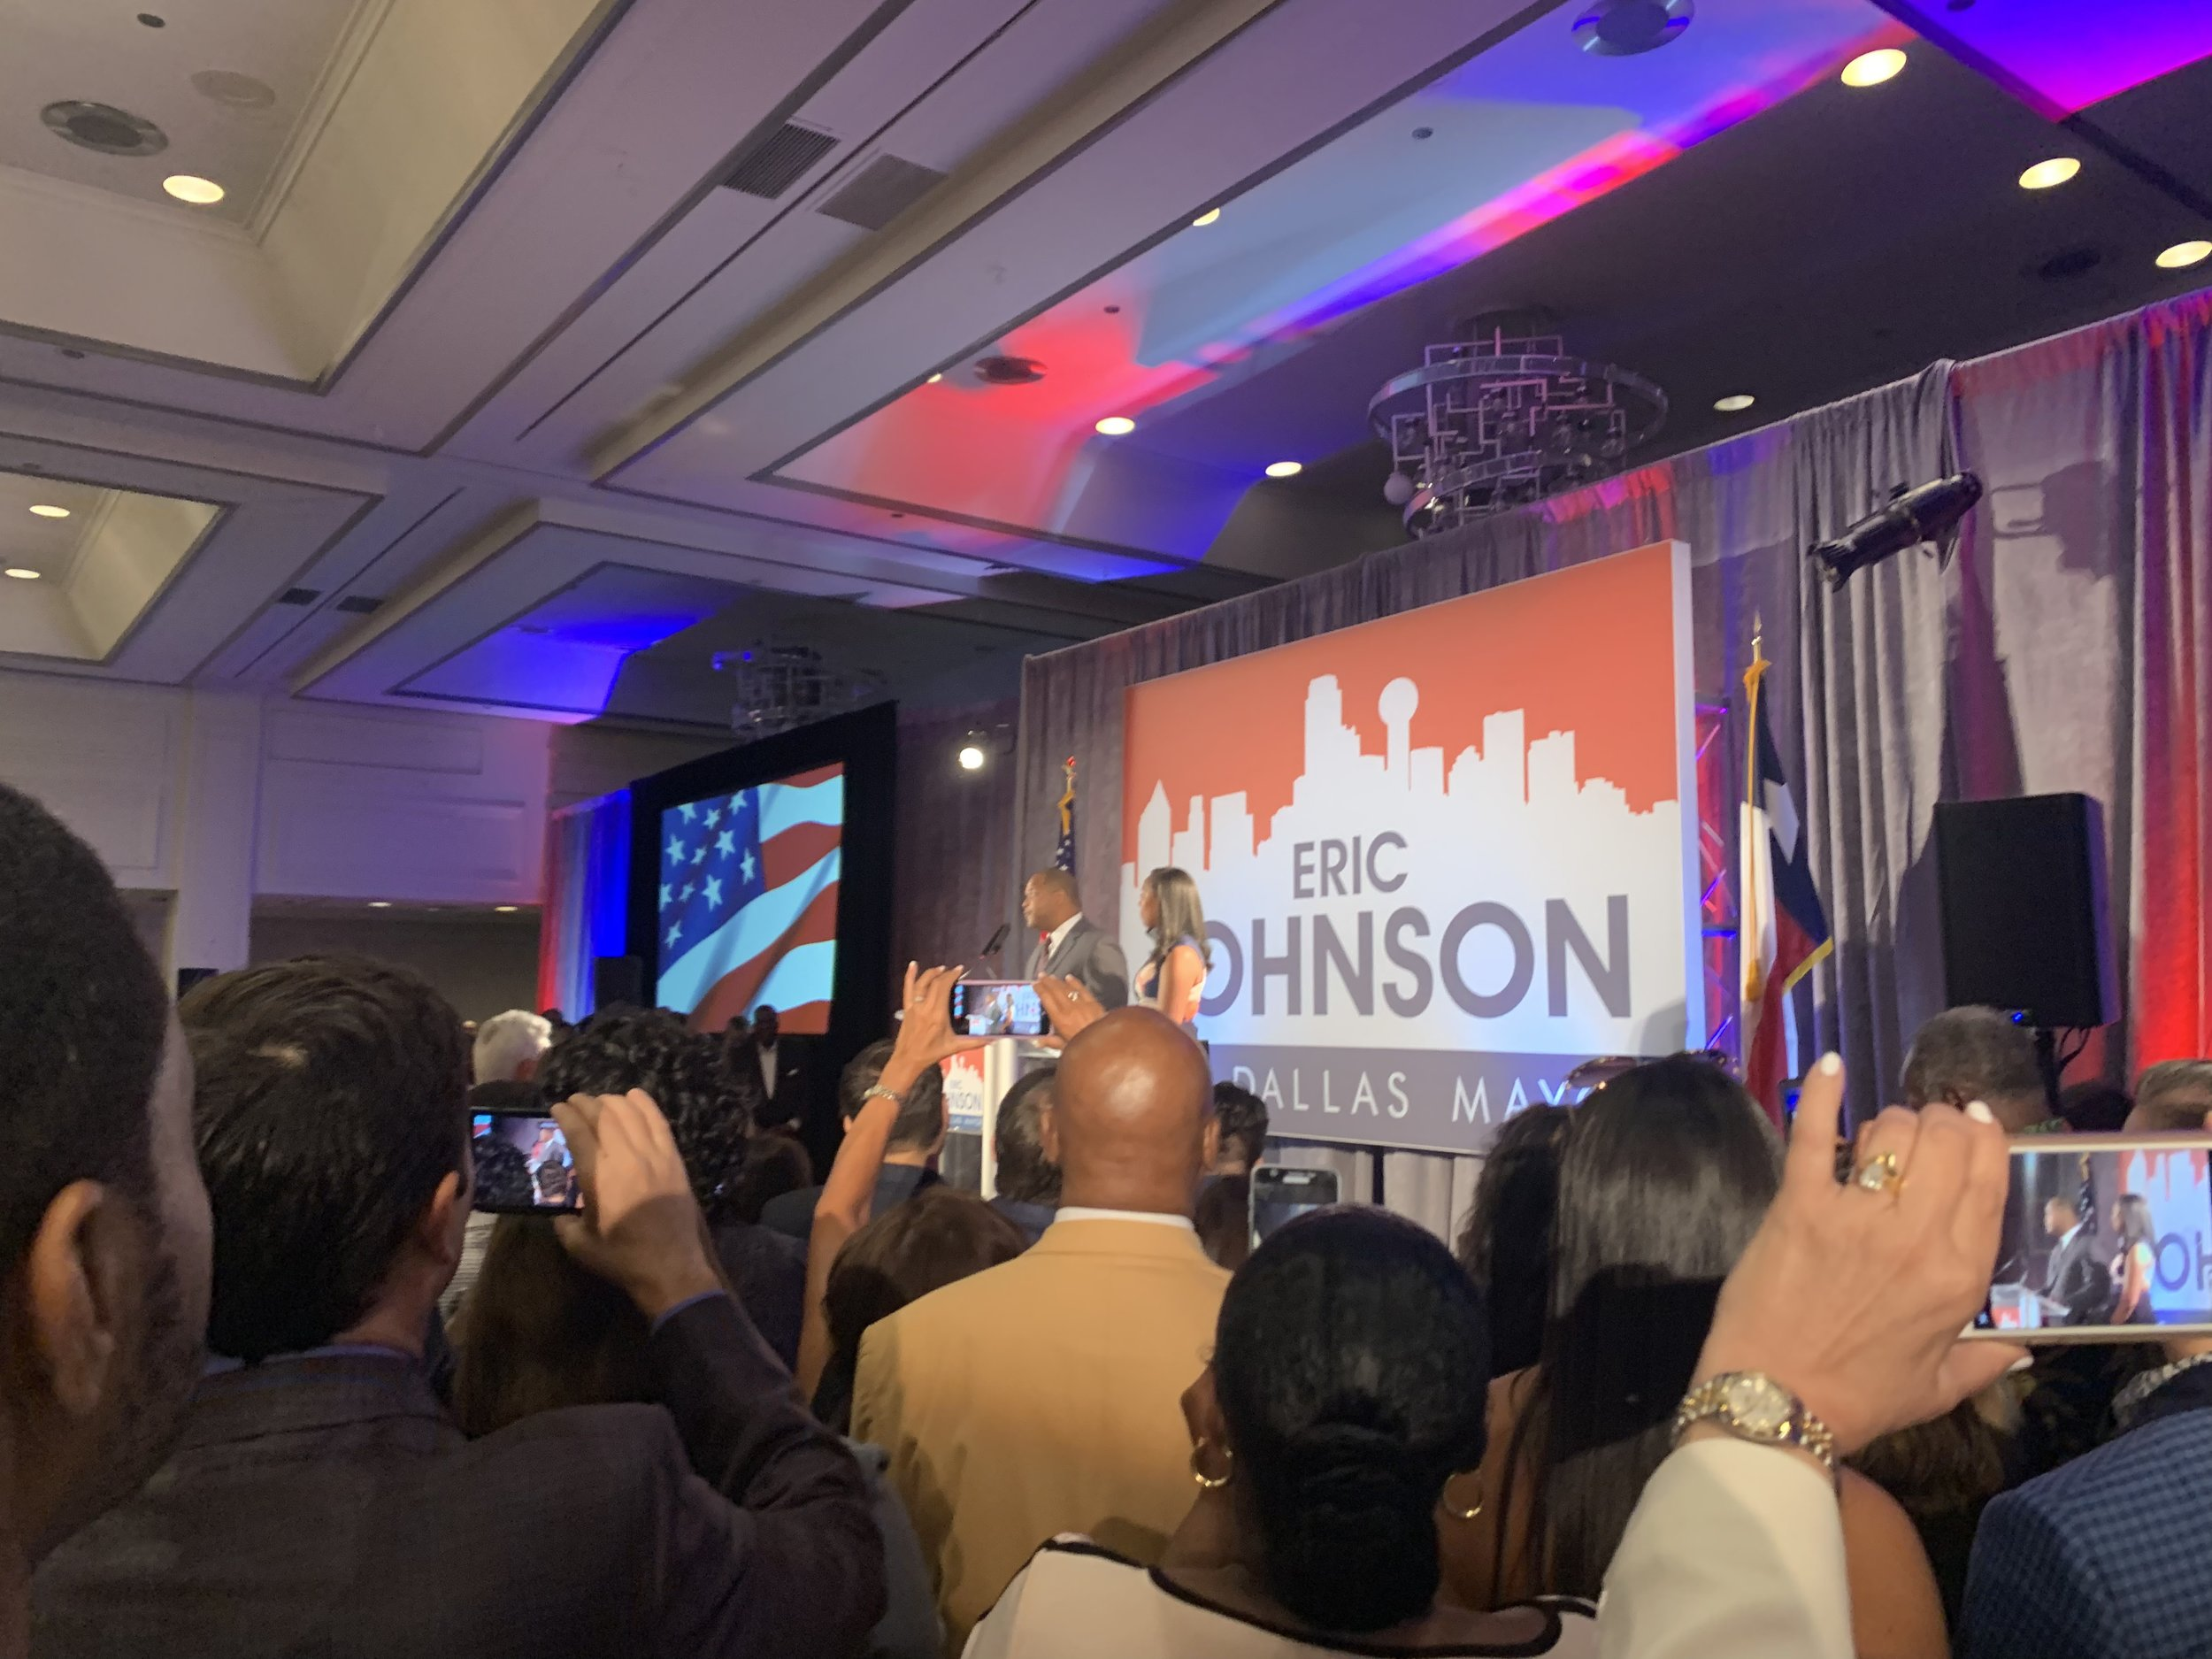 Dallas Mayor Eric Johnson's victory party in 2019.